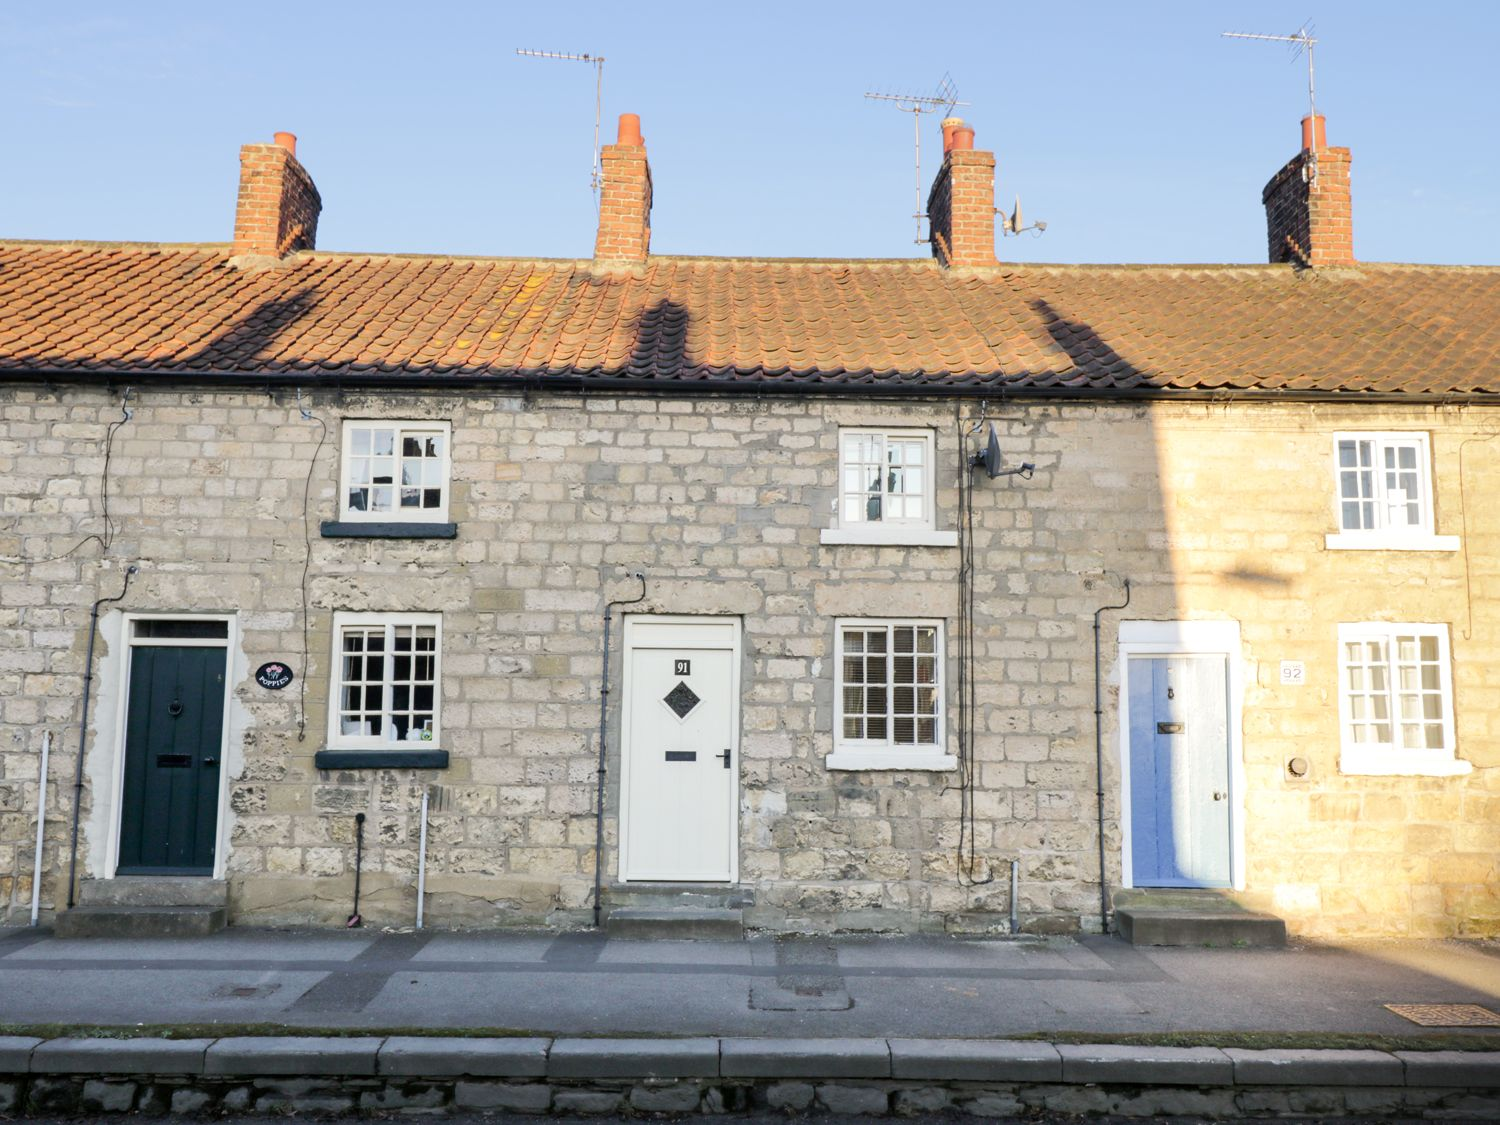 Appleleaf Cottage Pickering ( Ref 969686 ) Self catering accommodation sleeps 4